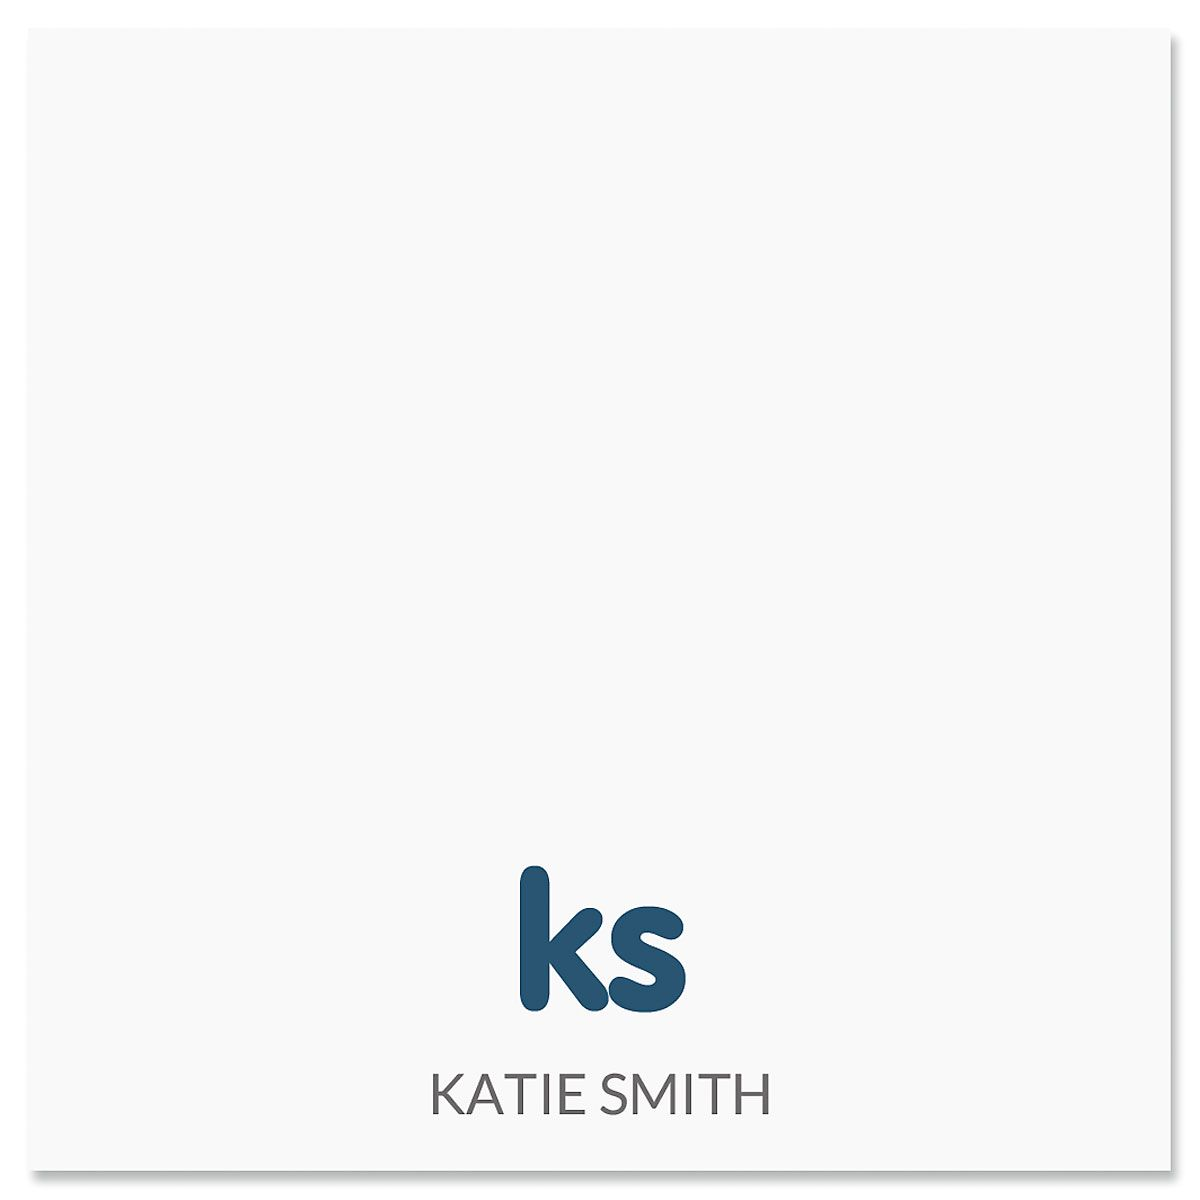 Sweet Monogram Personalized Note Sheets in a Cube